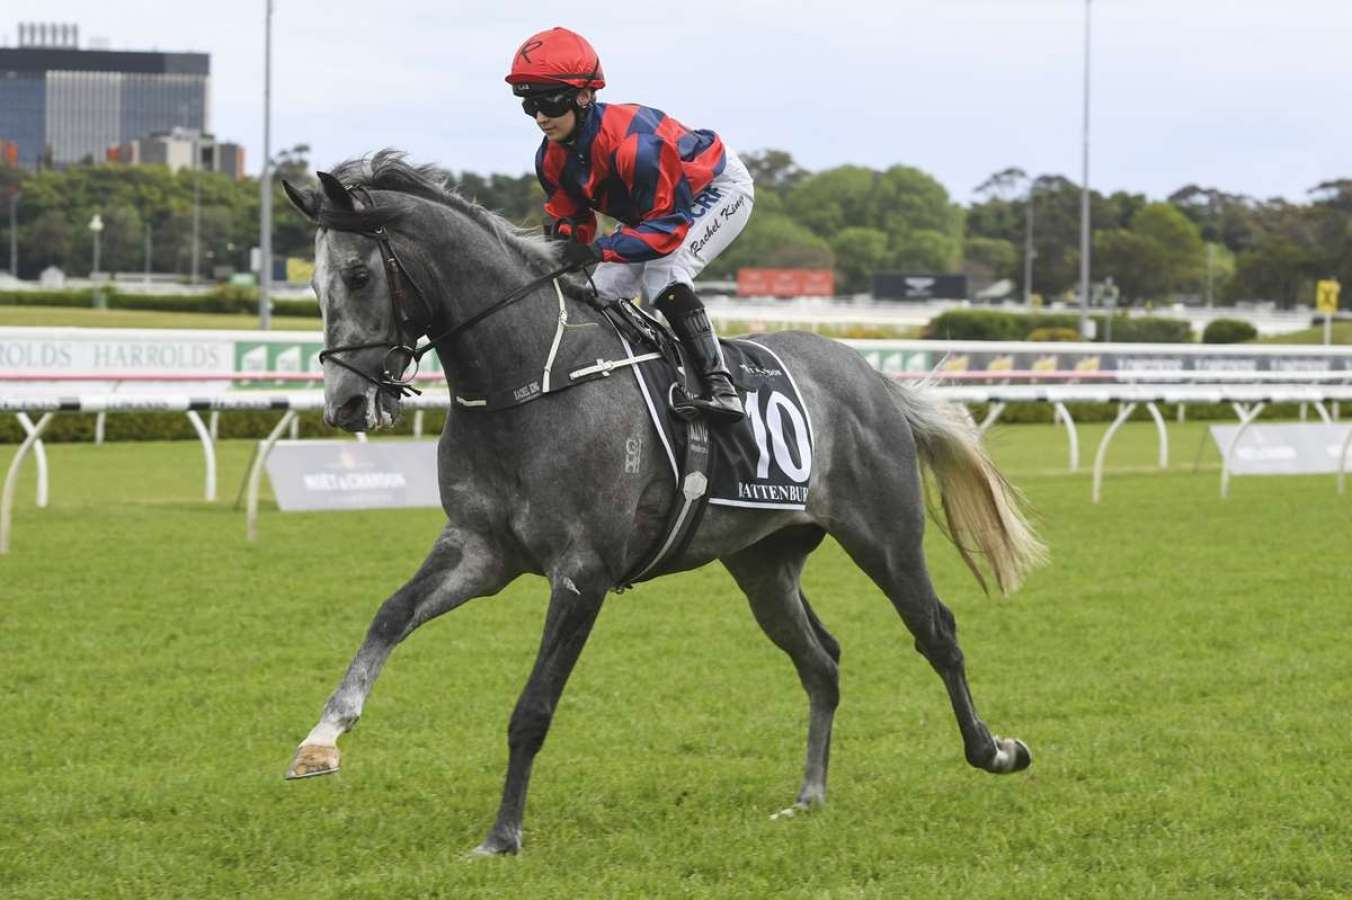 Battenburg heads to Melbourne off a G1 placing